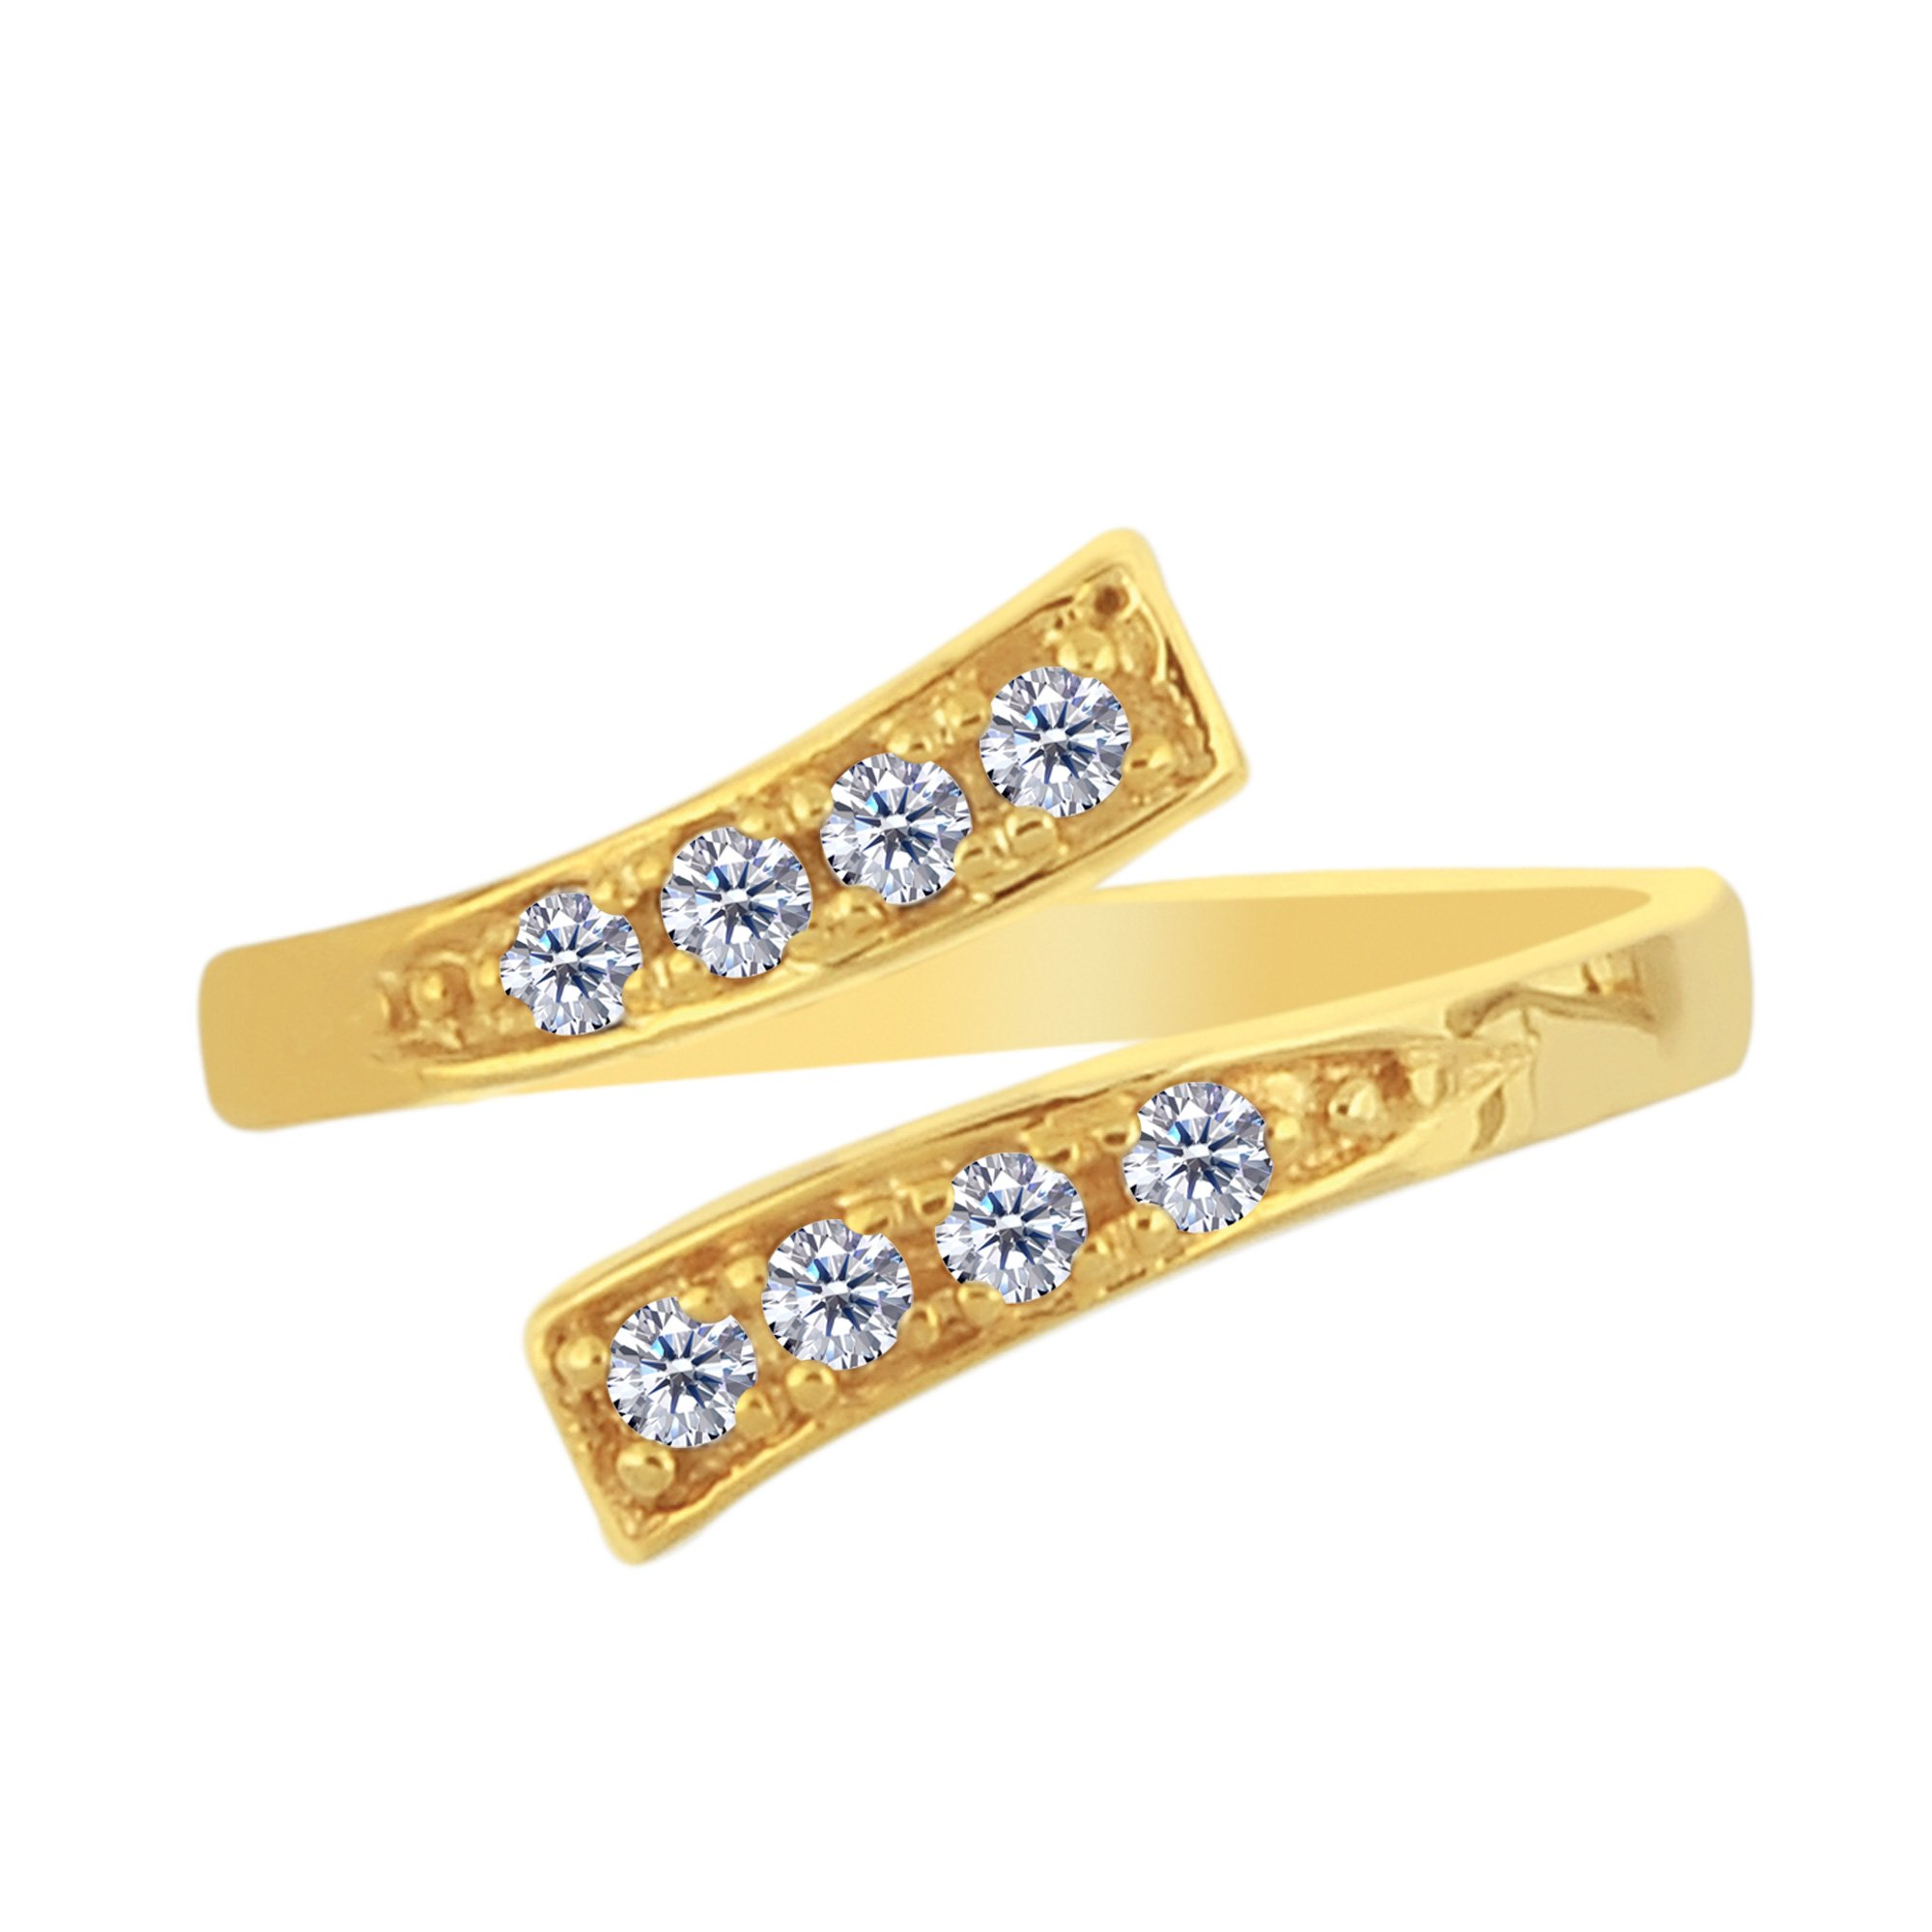 14K Yellow Gold Crossover With CZ Stones By Pass Style Adjustable Toe Ring by Jewelry Affairs